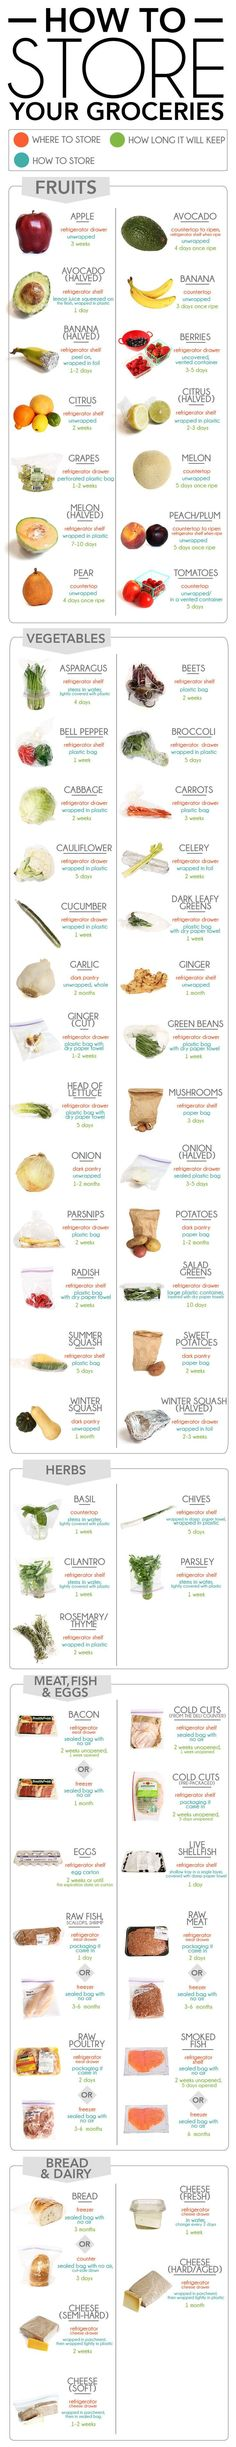 How To Store Your Groceries- This pin is so helpful when stocking up your fridge, pantry and home supplies!